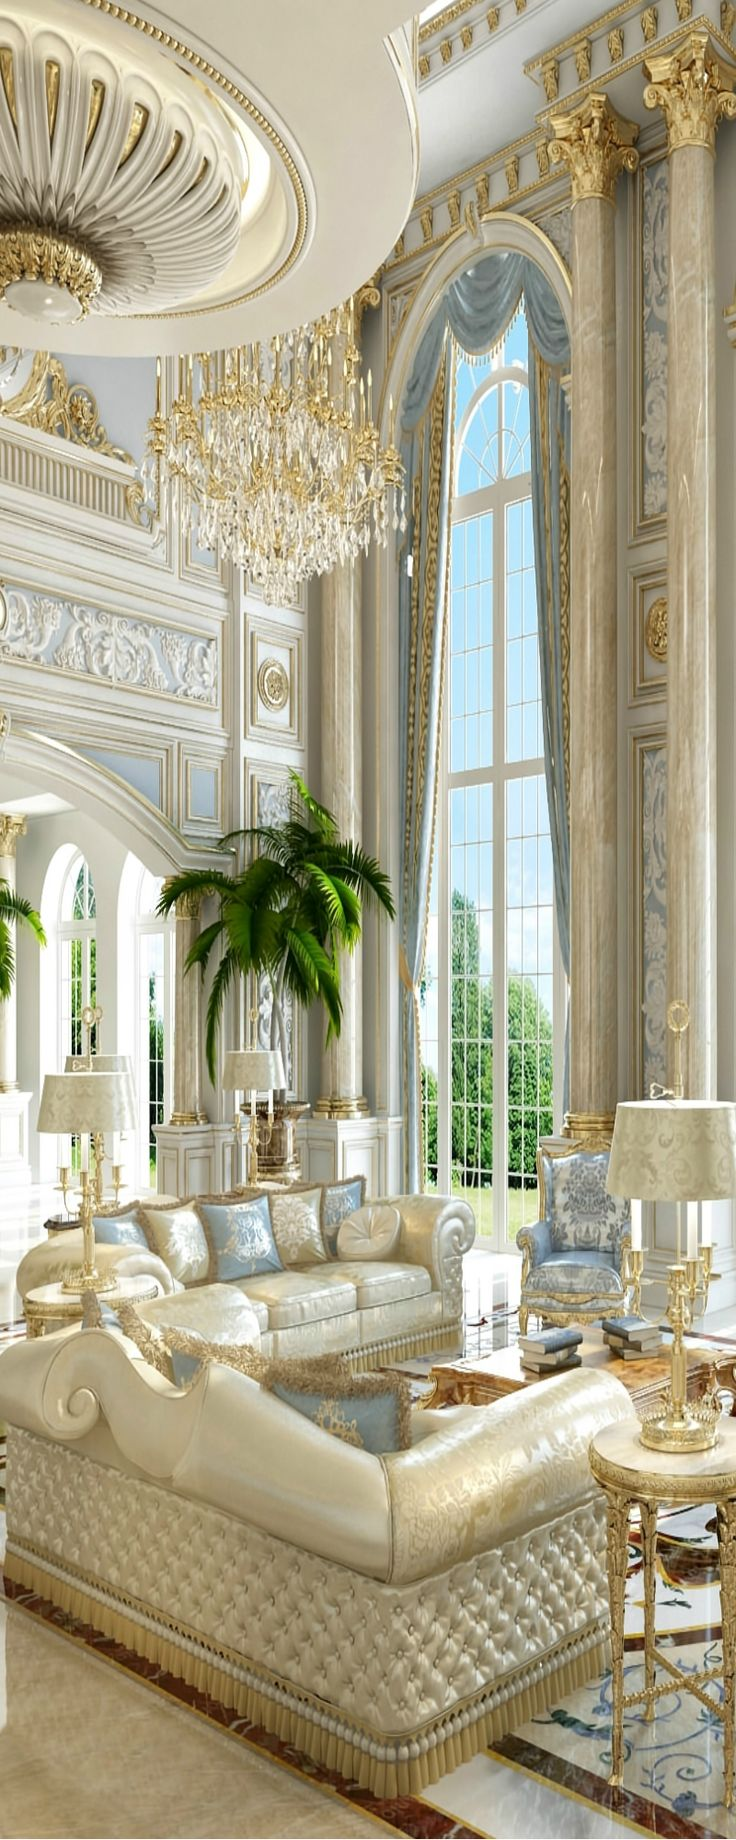 Ordinaire Rosamaria G Frangini | Architecture Luxury Interiors | Lux Interiors |  Antonovich Luxury Design